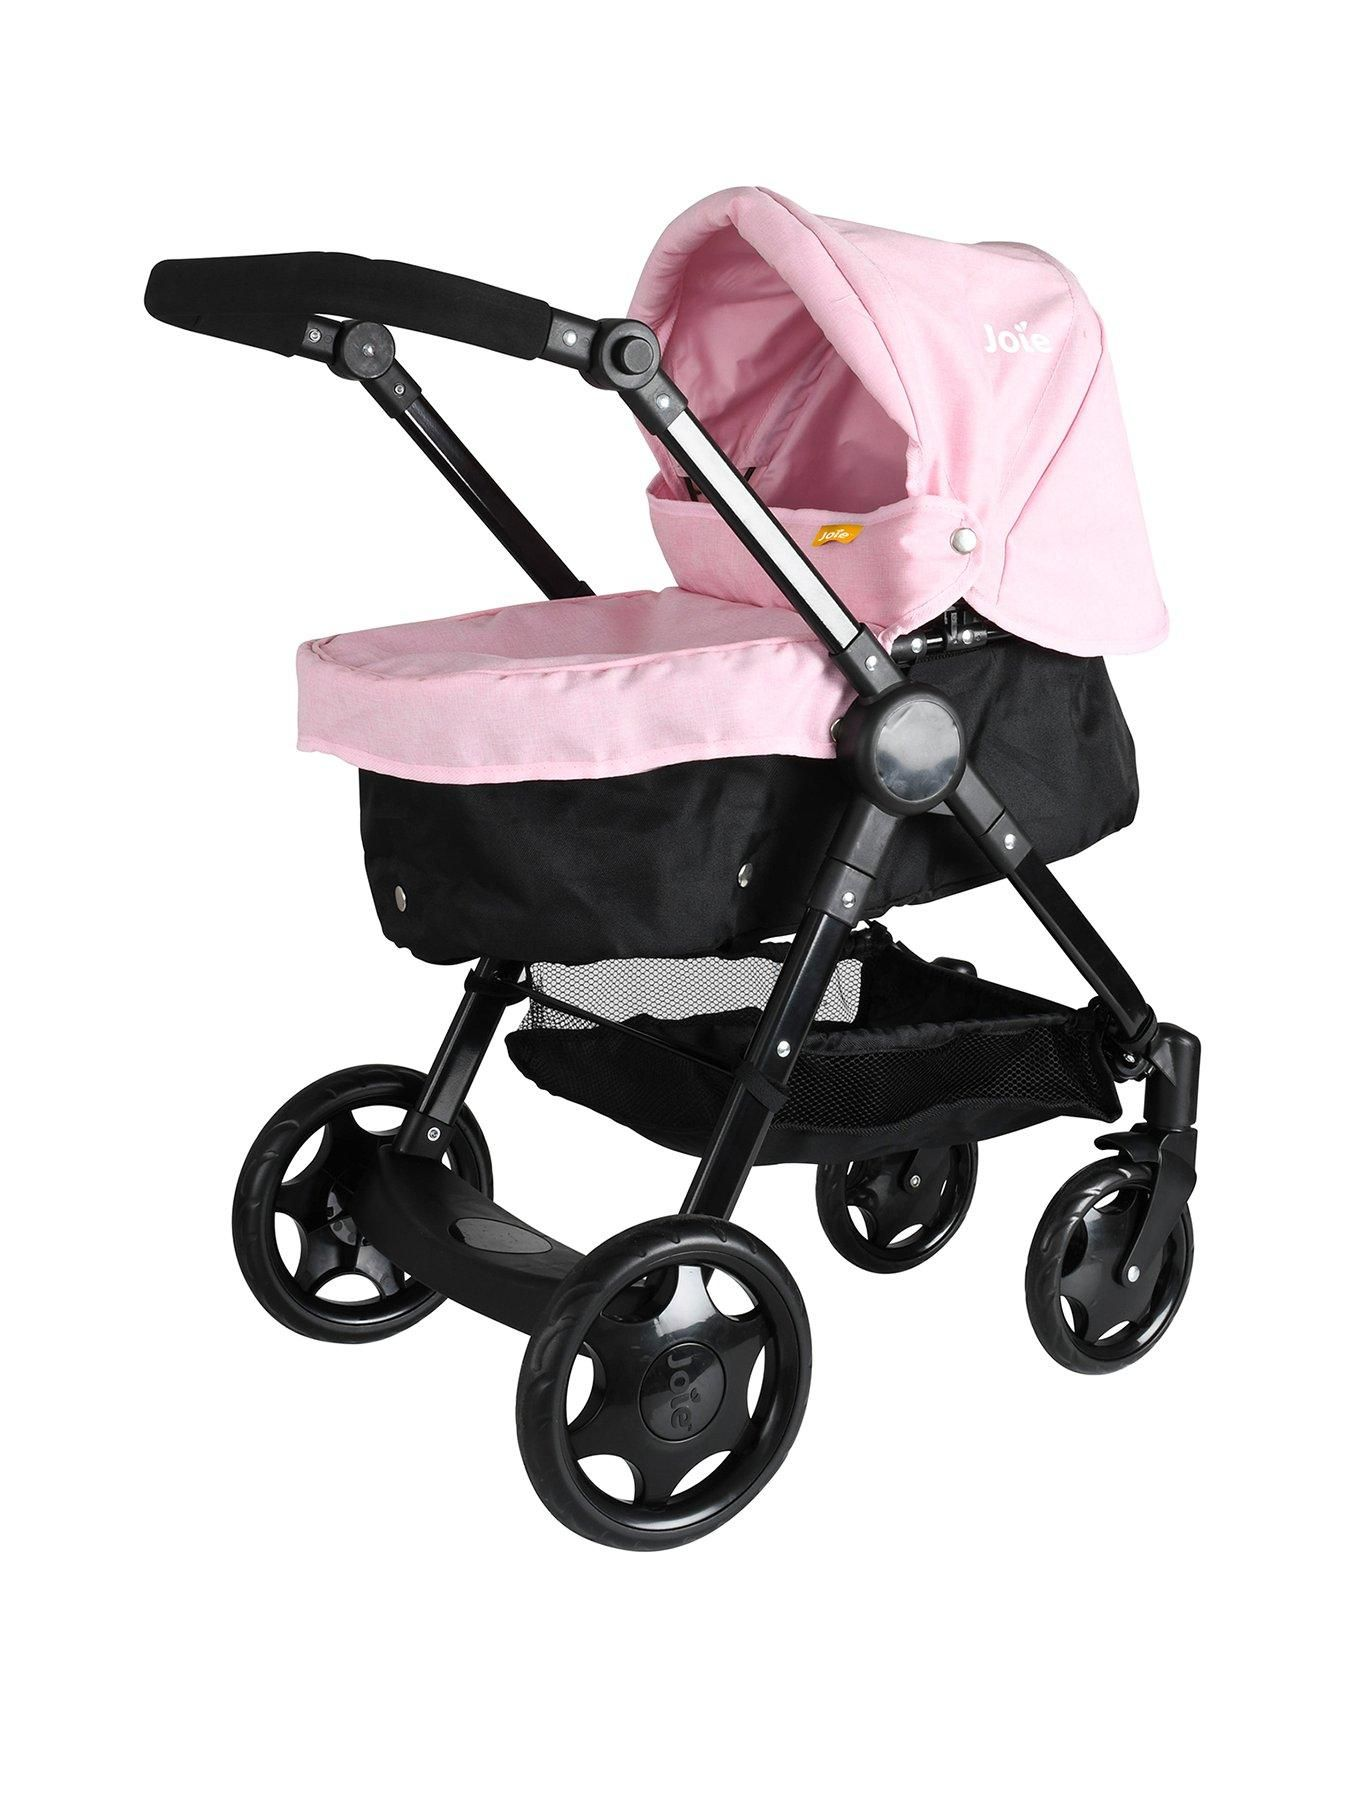 Junior Litetrax Travel System Pram Travel system, Prams